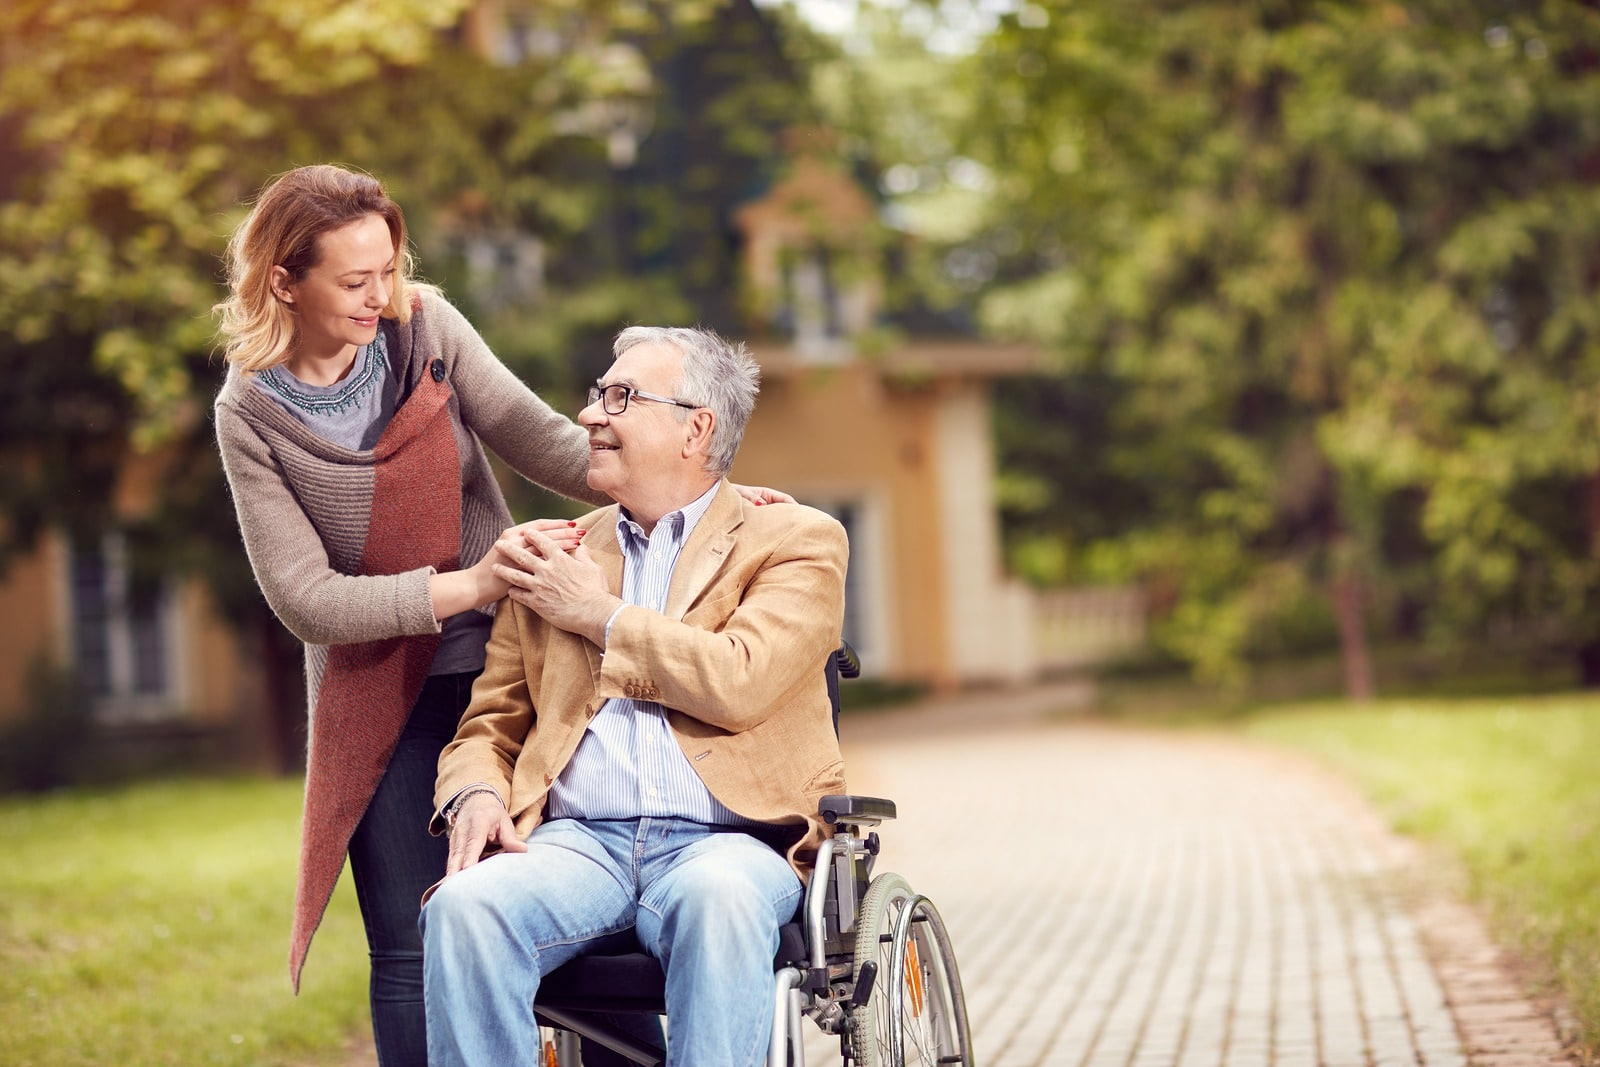 What Happens When an Employee Becomes a Caregiver?